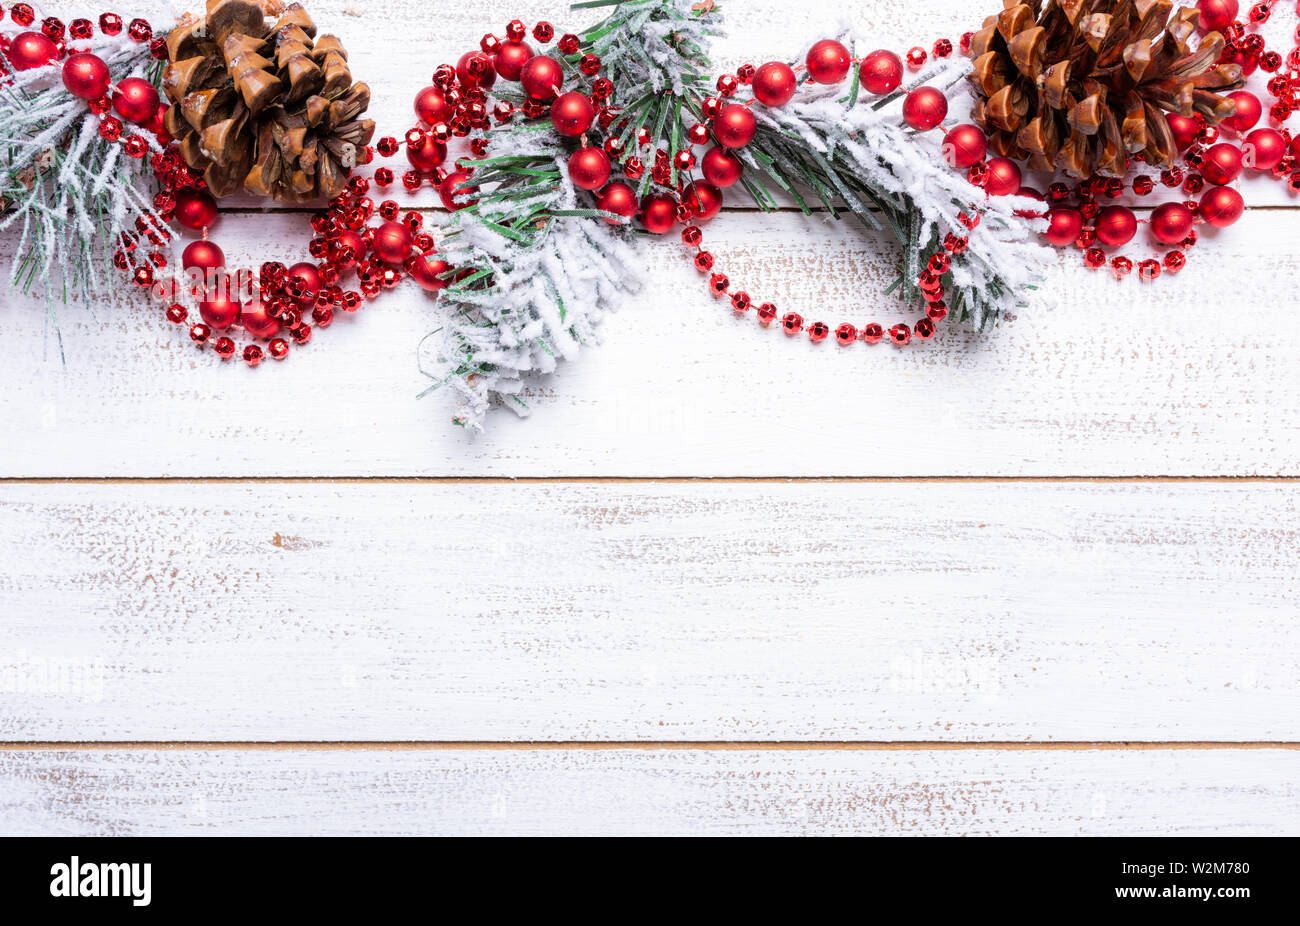 Christmas decorations on a white wood background with copy space. Pine cones, garland, berries and pine branches Stock Photo